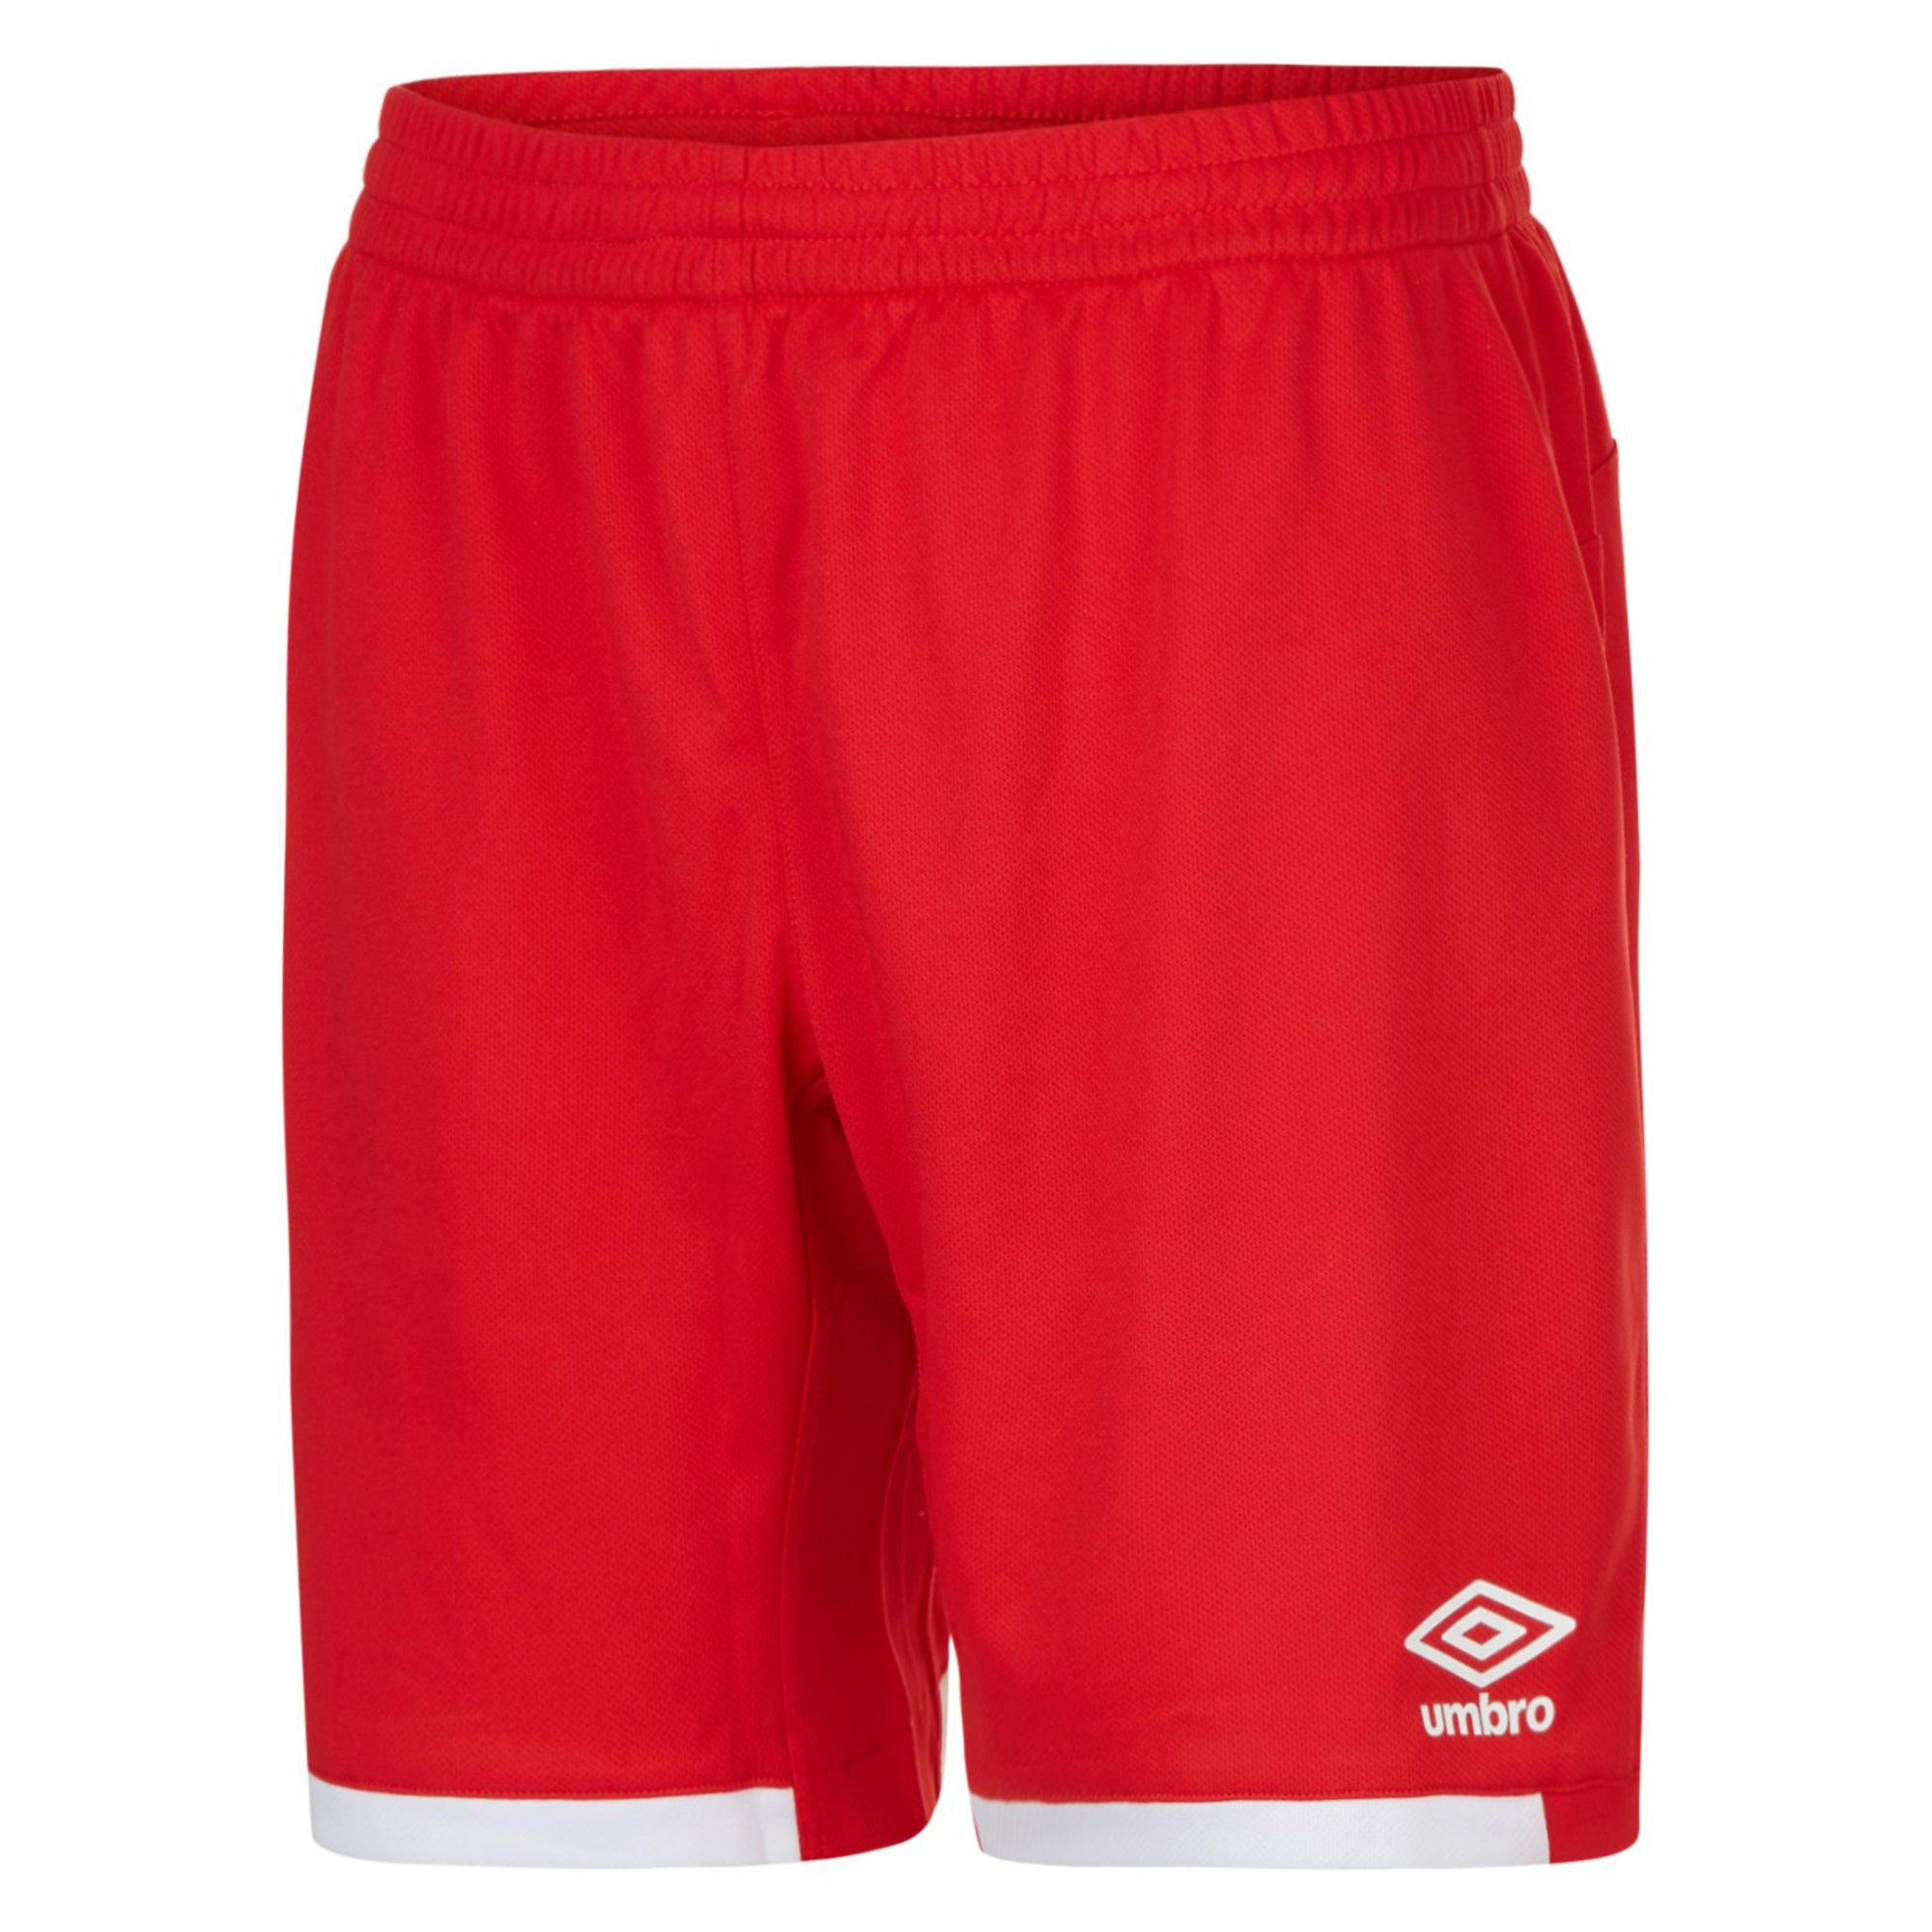 Red umbro premier shorts with contrast white hems